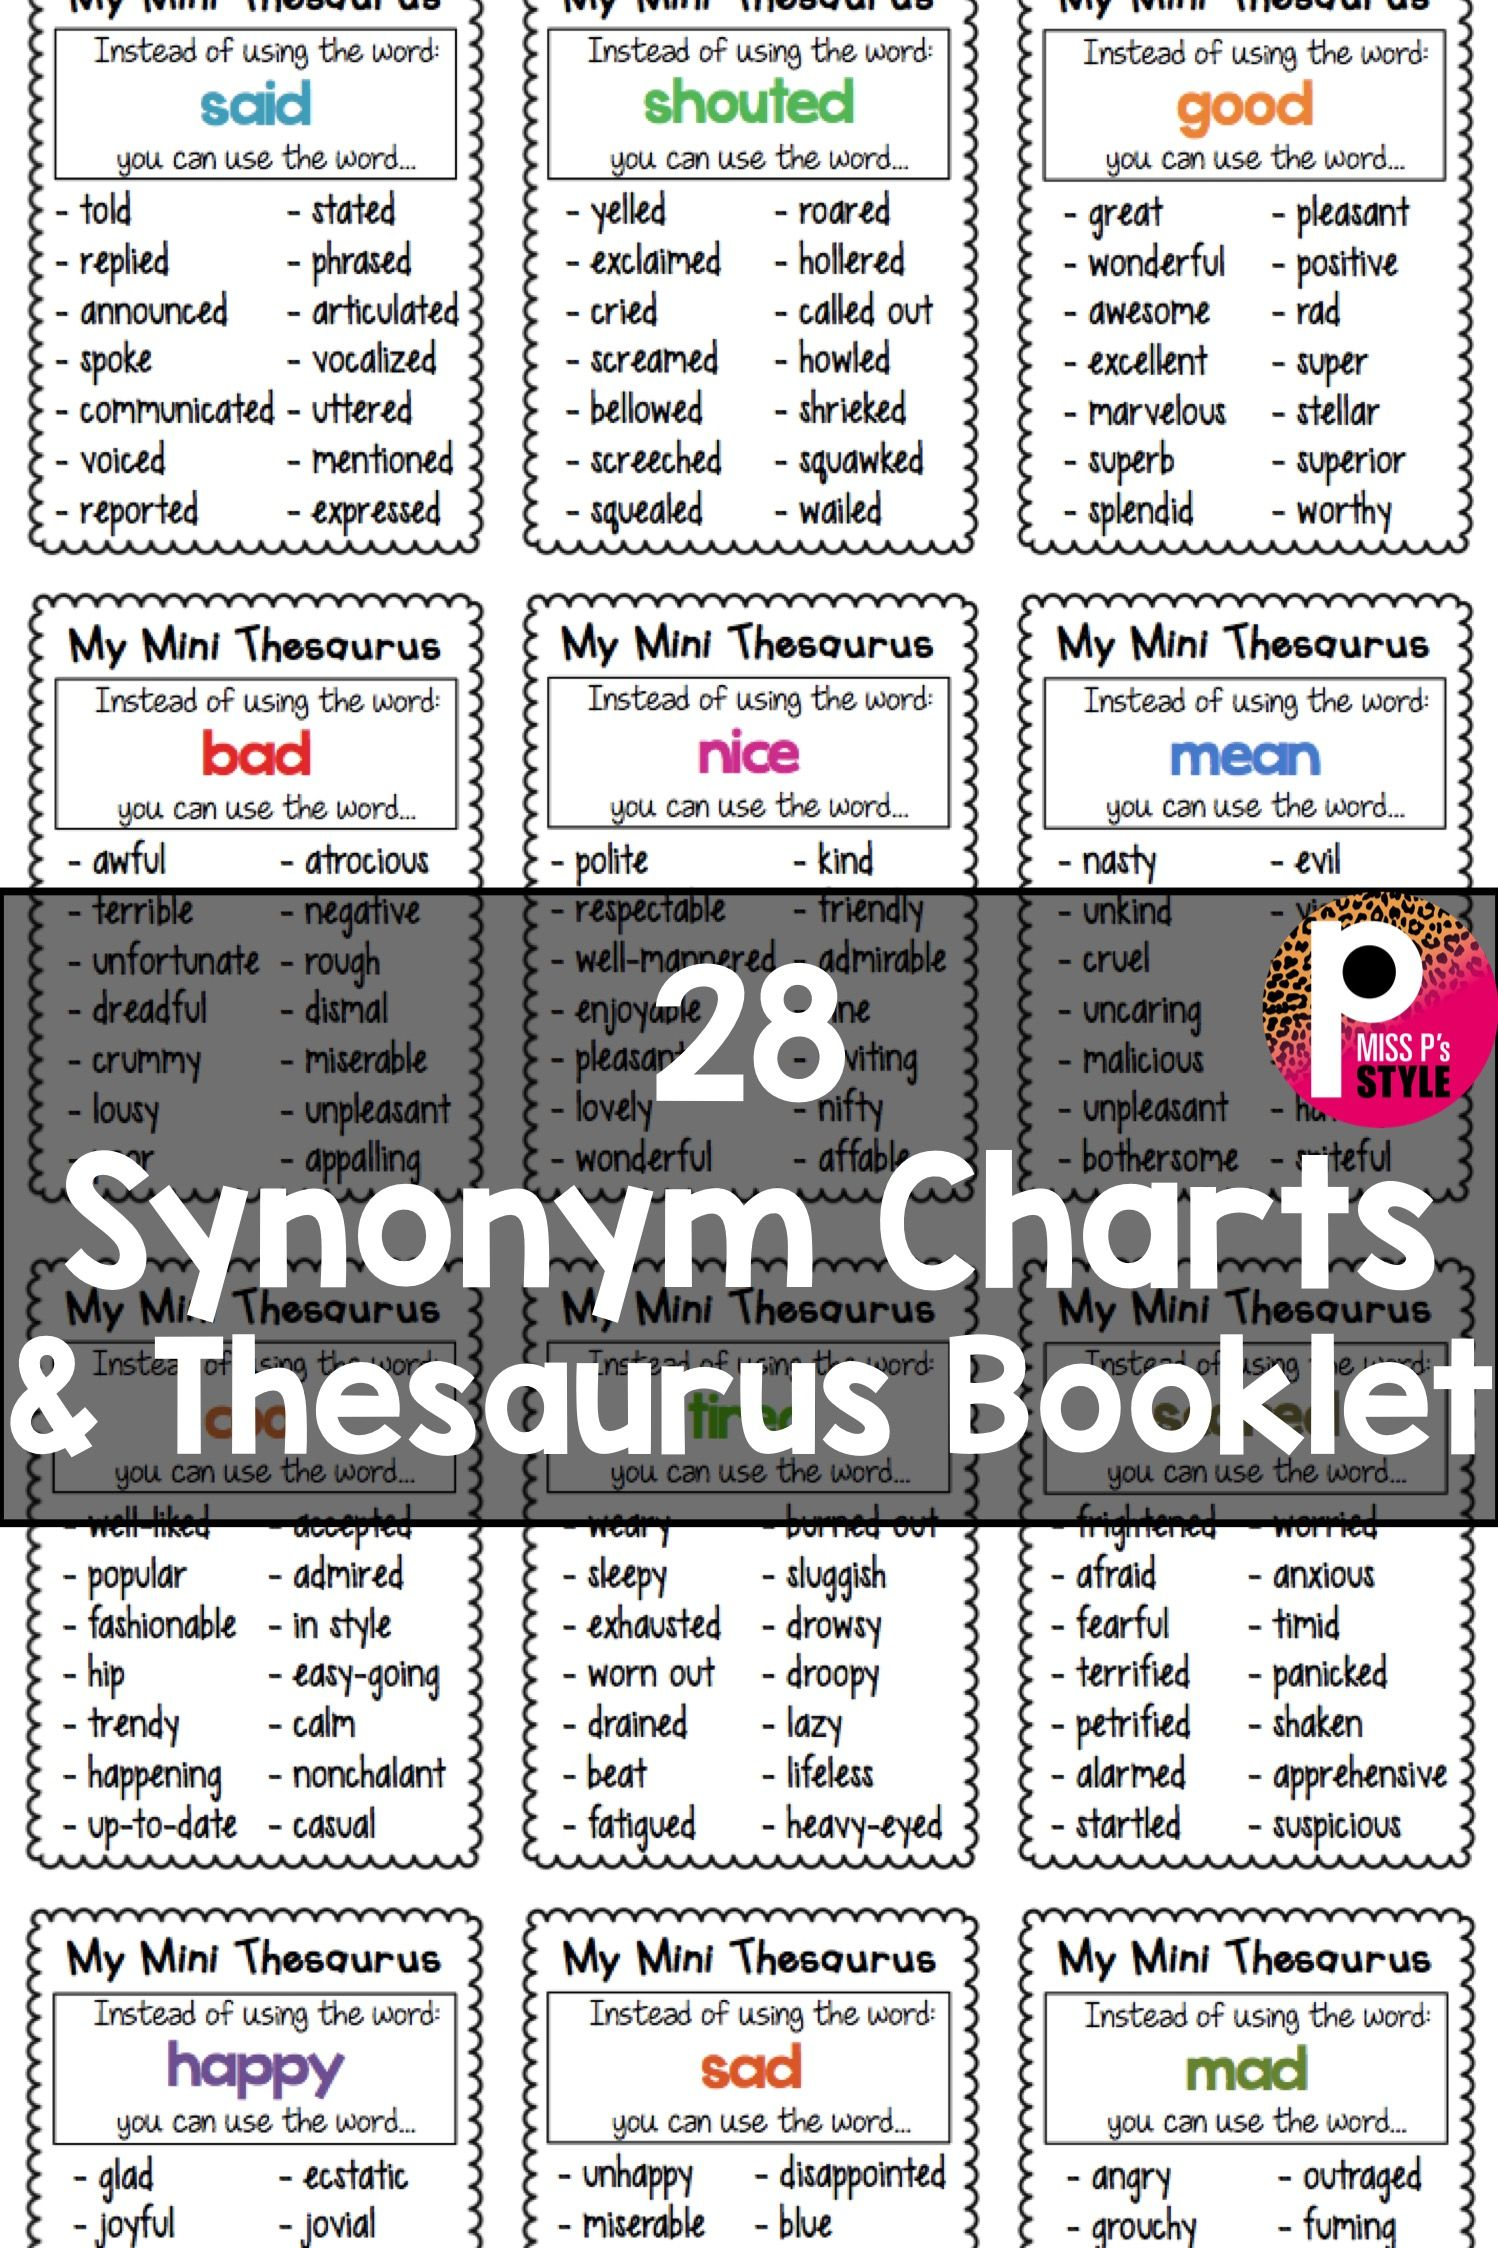 Thesaurus Synonym Charts Writing Instruction Writing Lessons Learn English Words